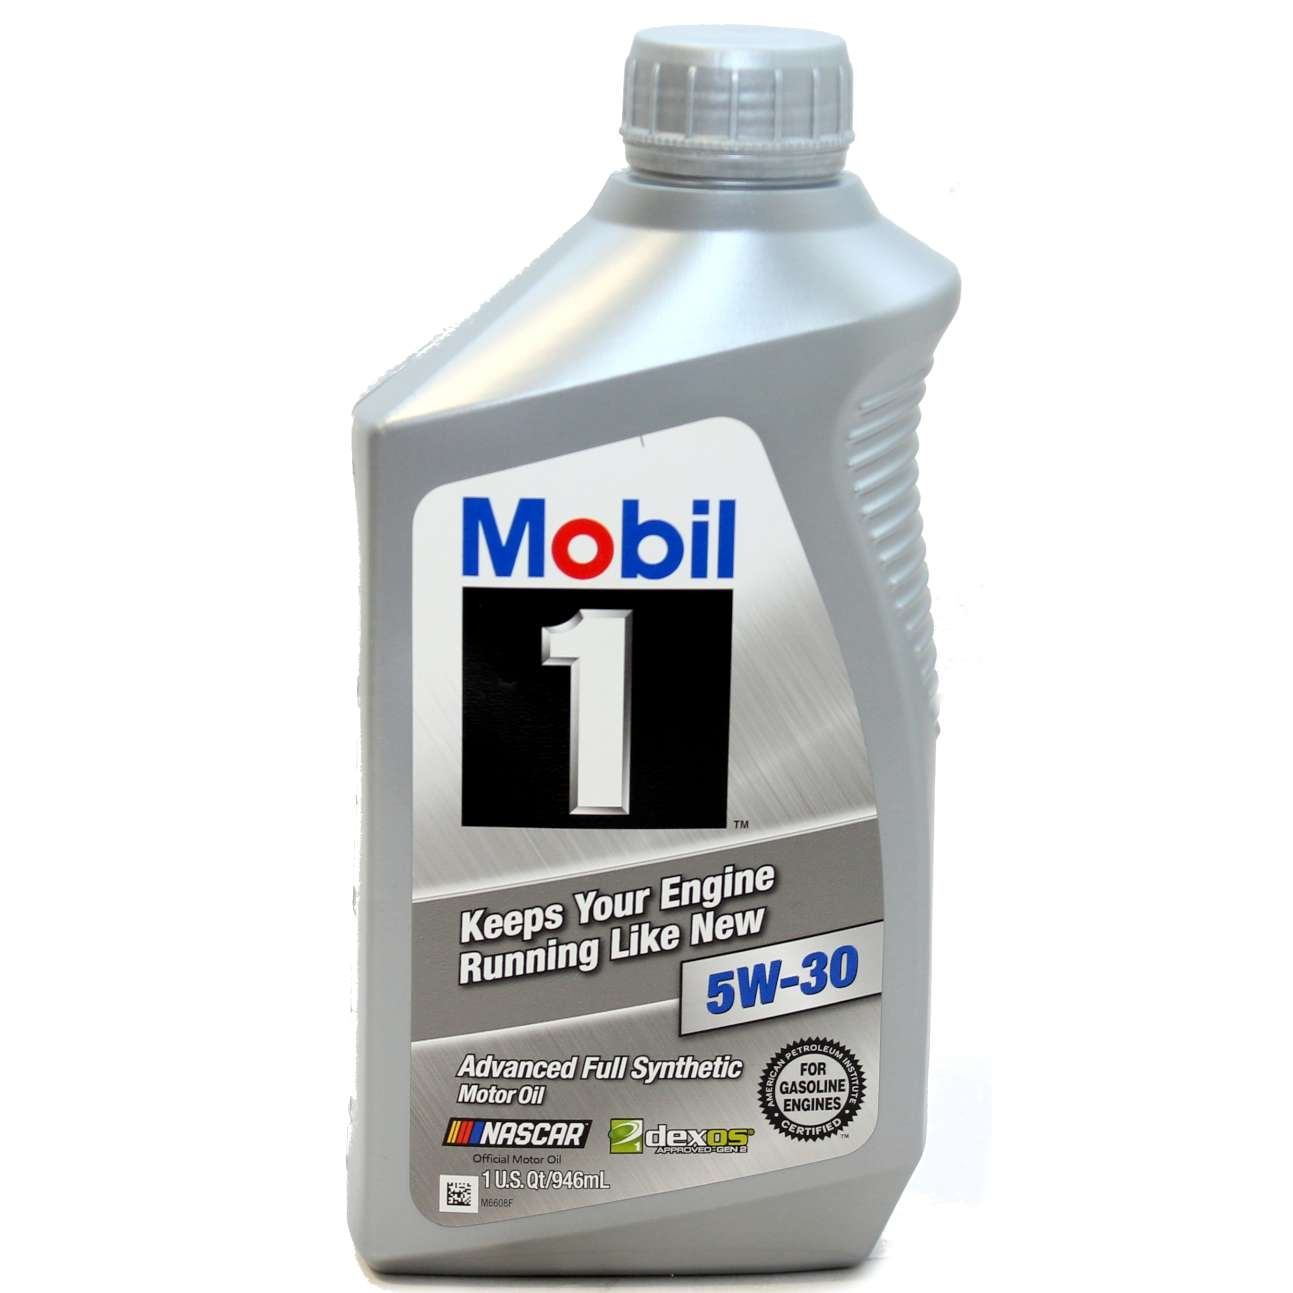 Mobil 1 5W30 5W-30 Advanced Full Synthetic Engine Oil